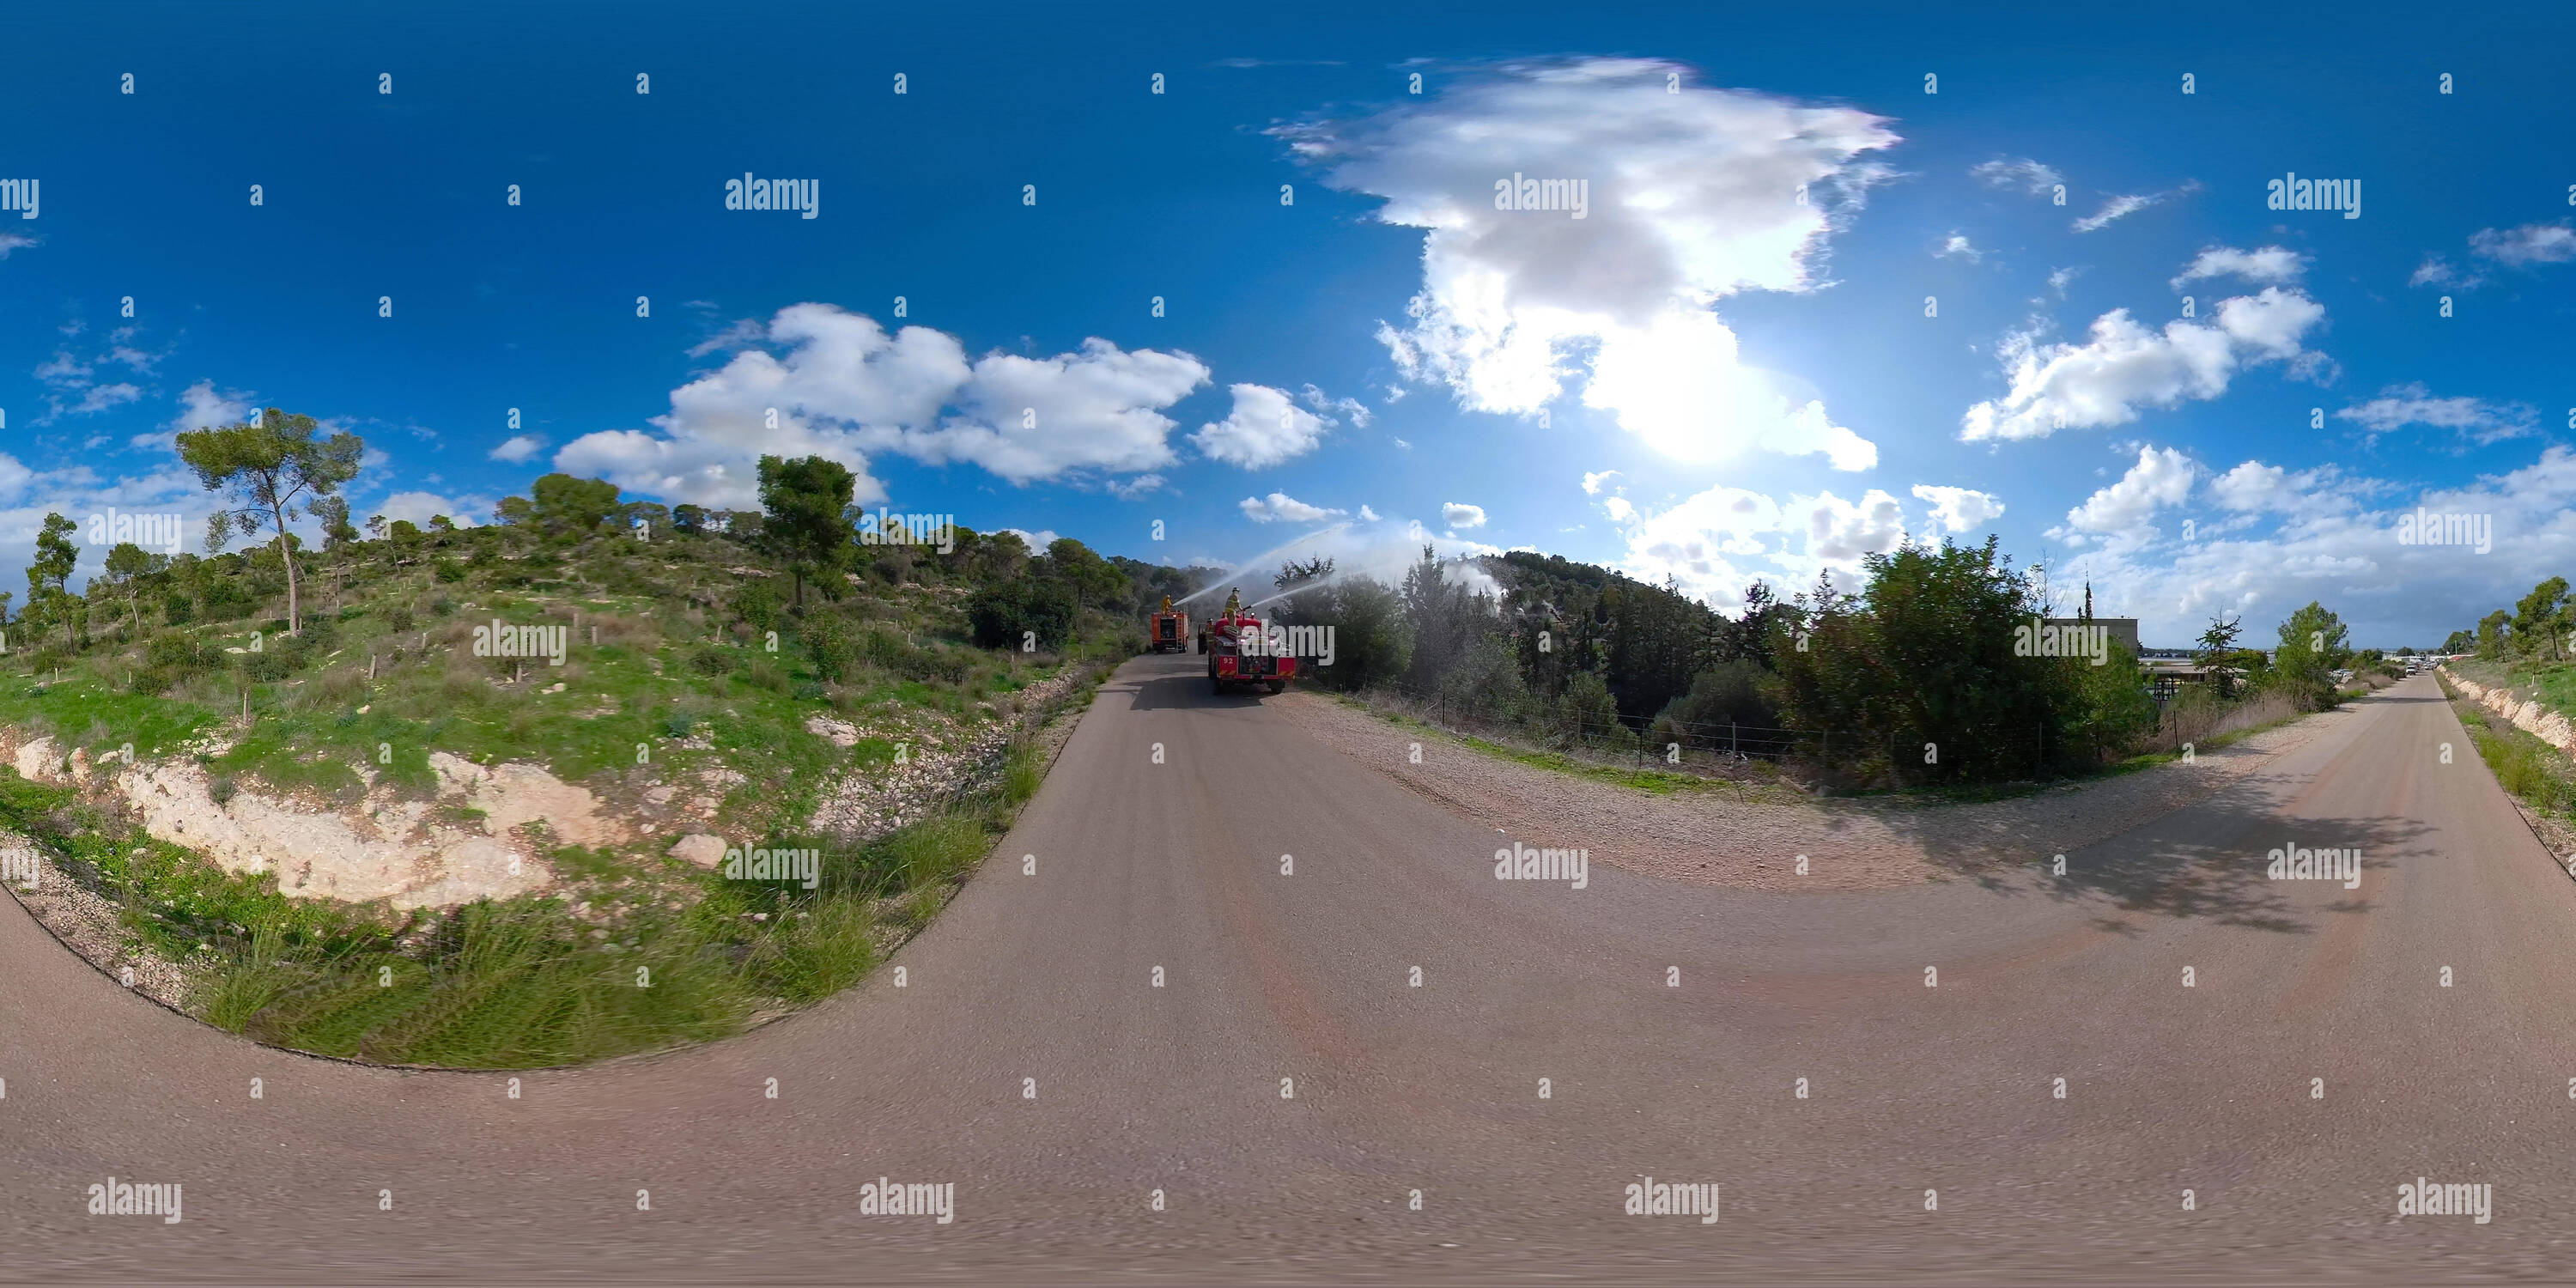 360 degree panoramic view of Fire engines spraying water to a fire zone in Mt. Carmel, Israel, 360 degree photo panorama VR